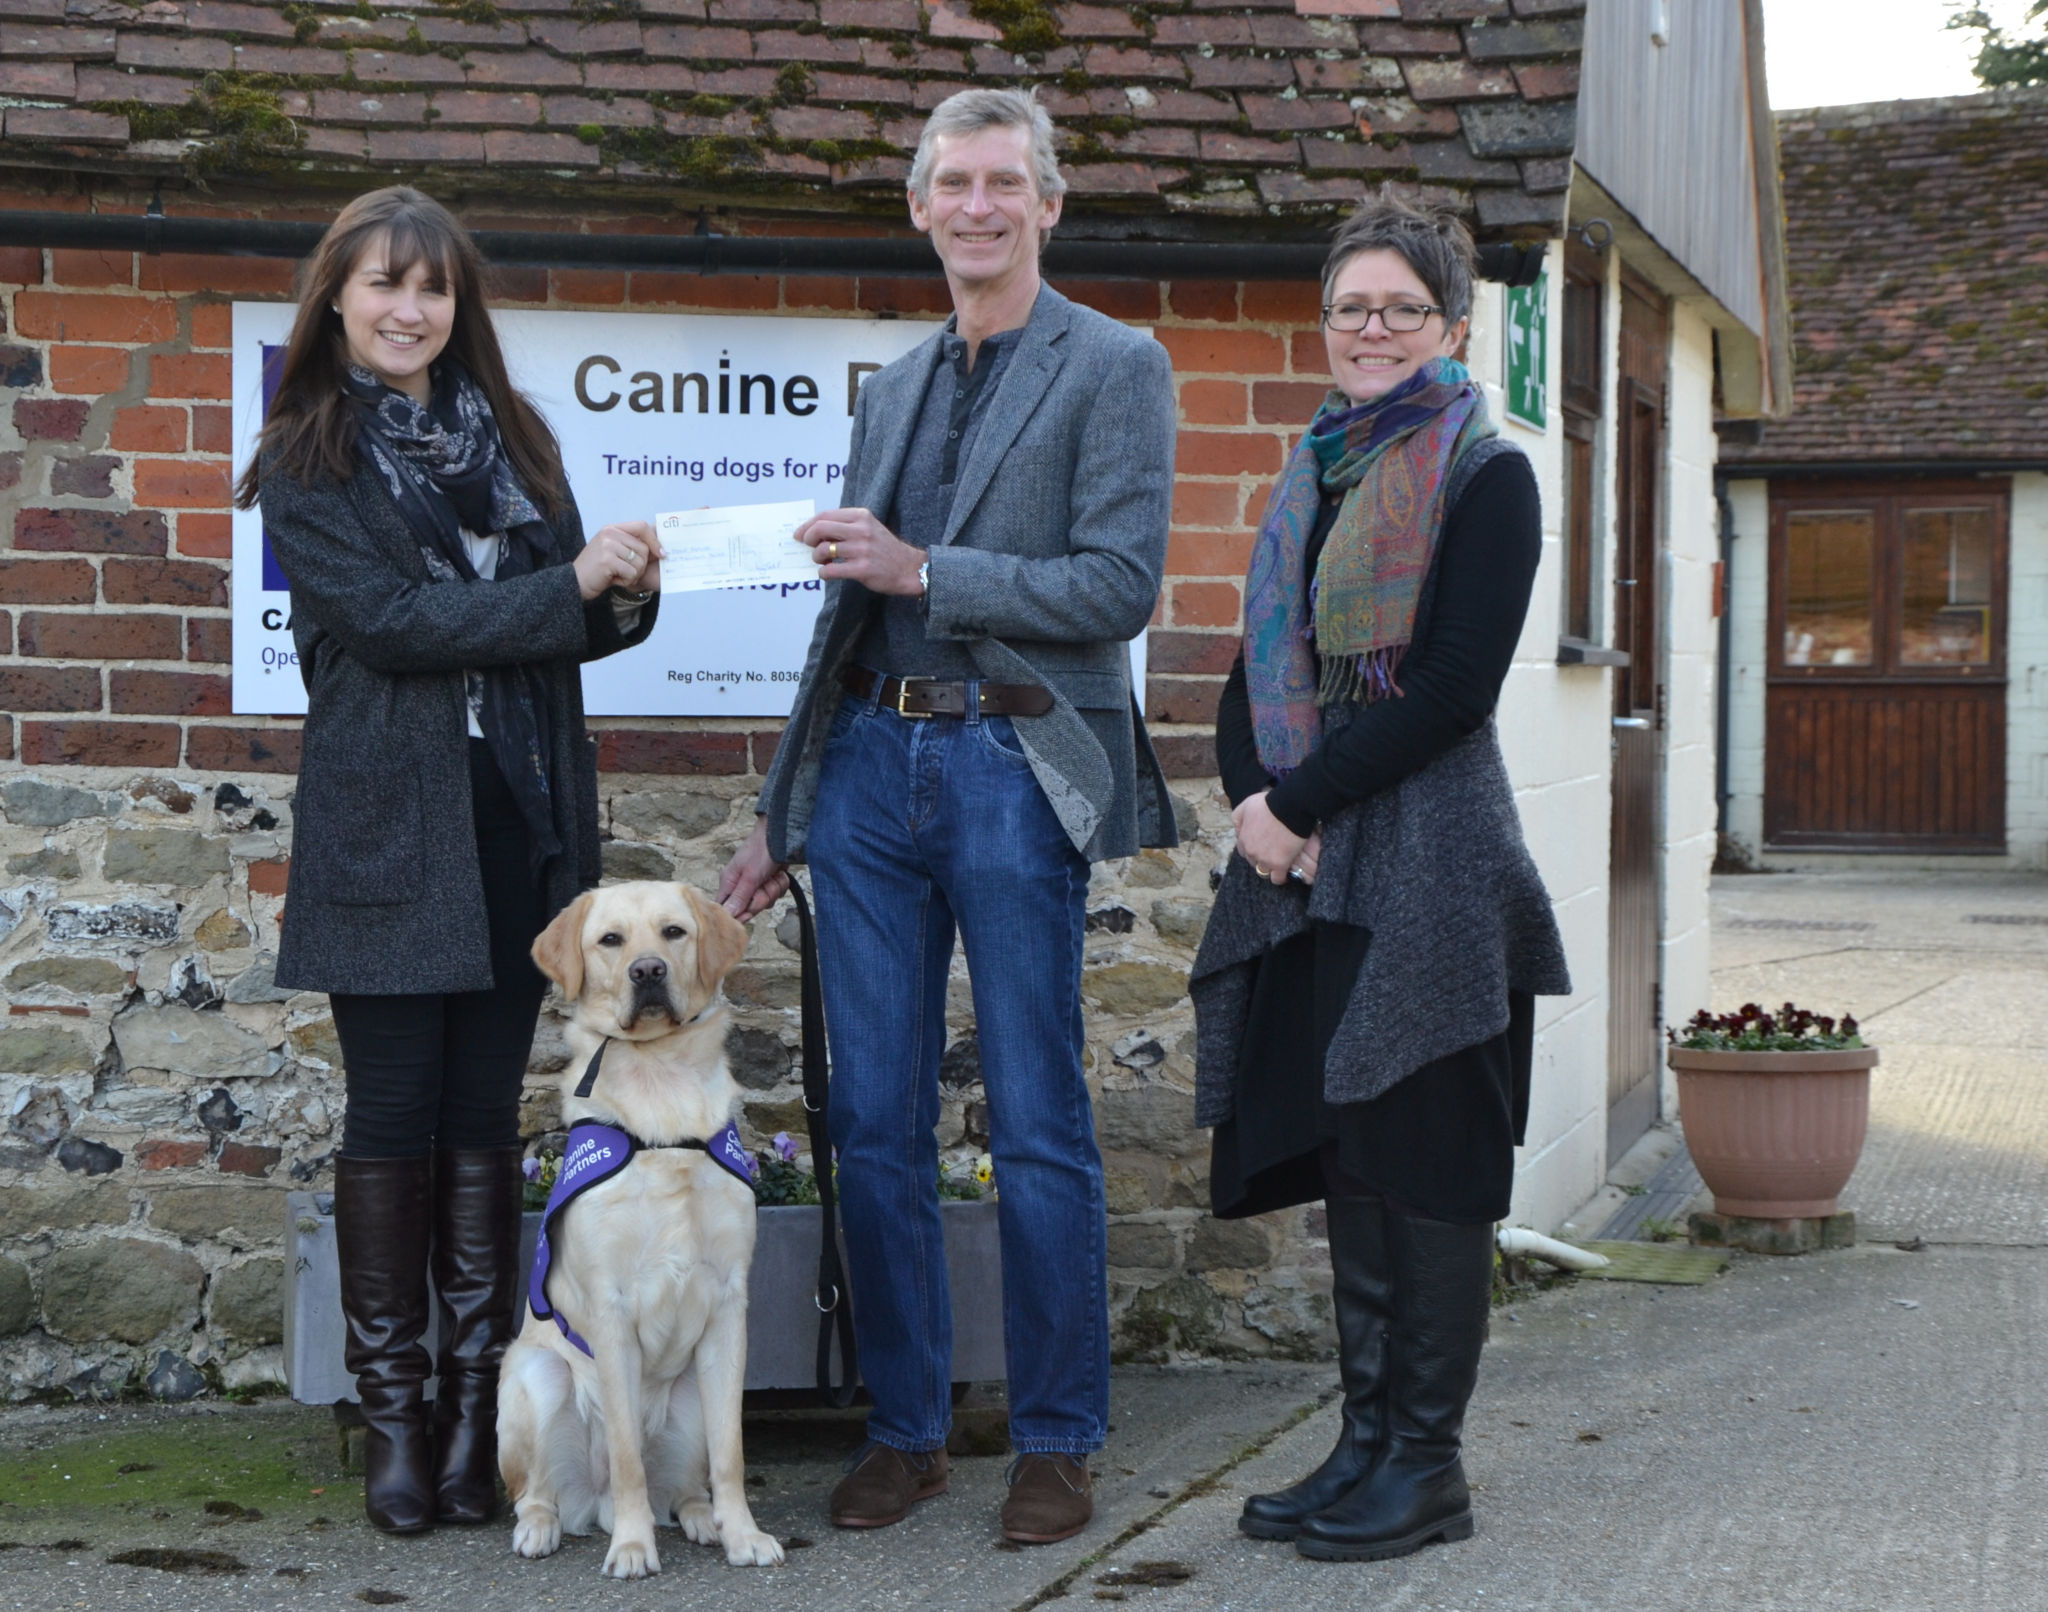 Members of the Income Generation Team and a dog in training at Canine Partners receiving a cheque from a Charitable Trust